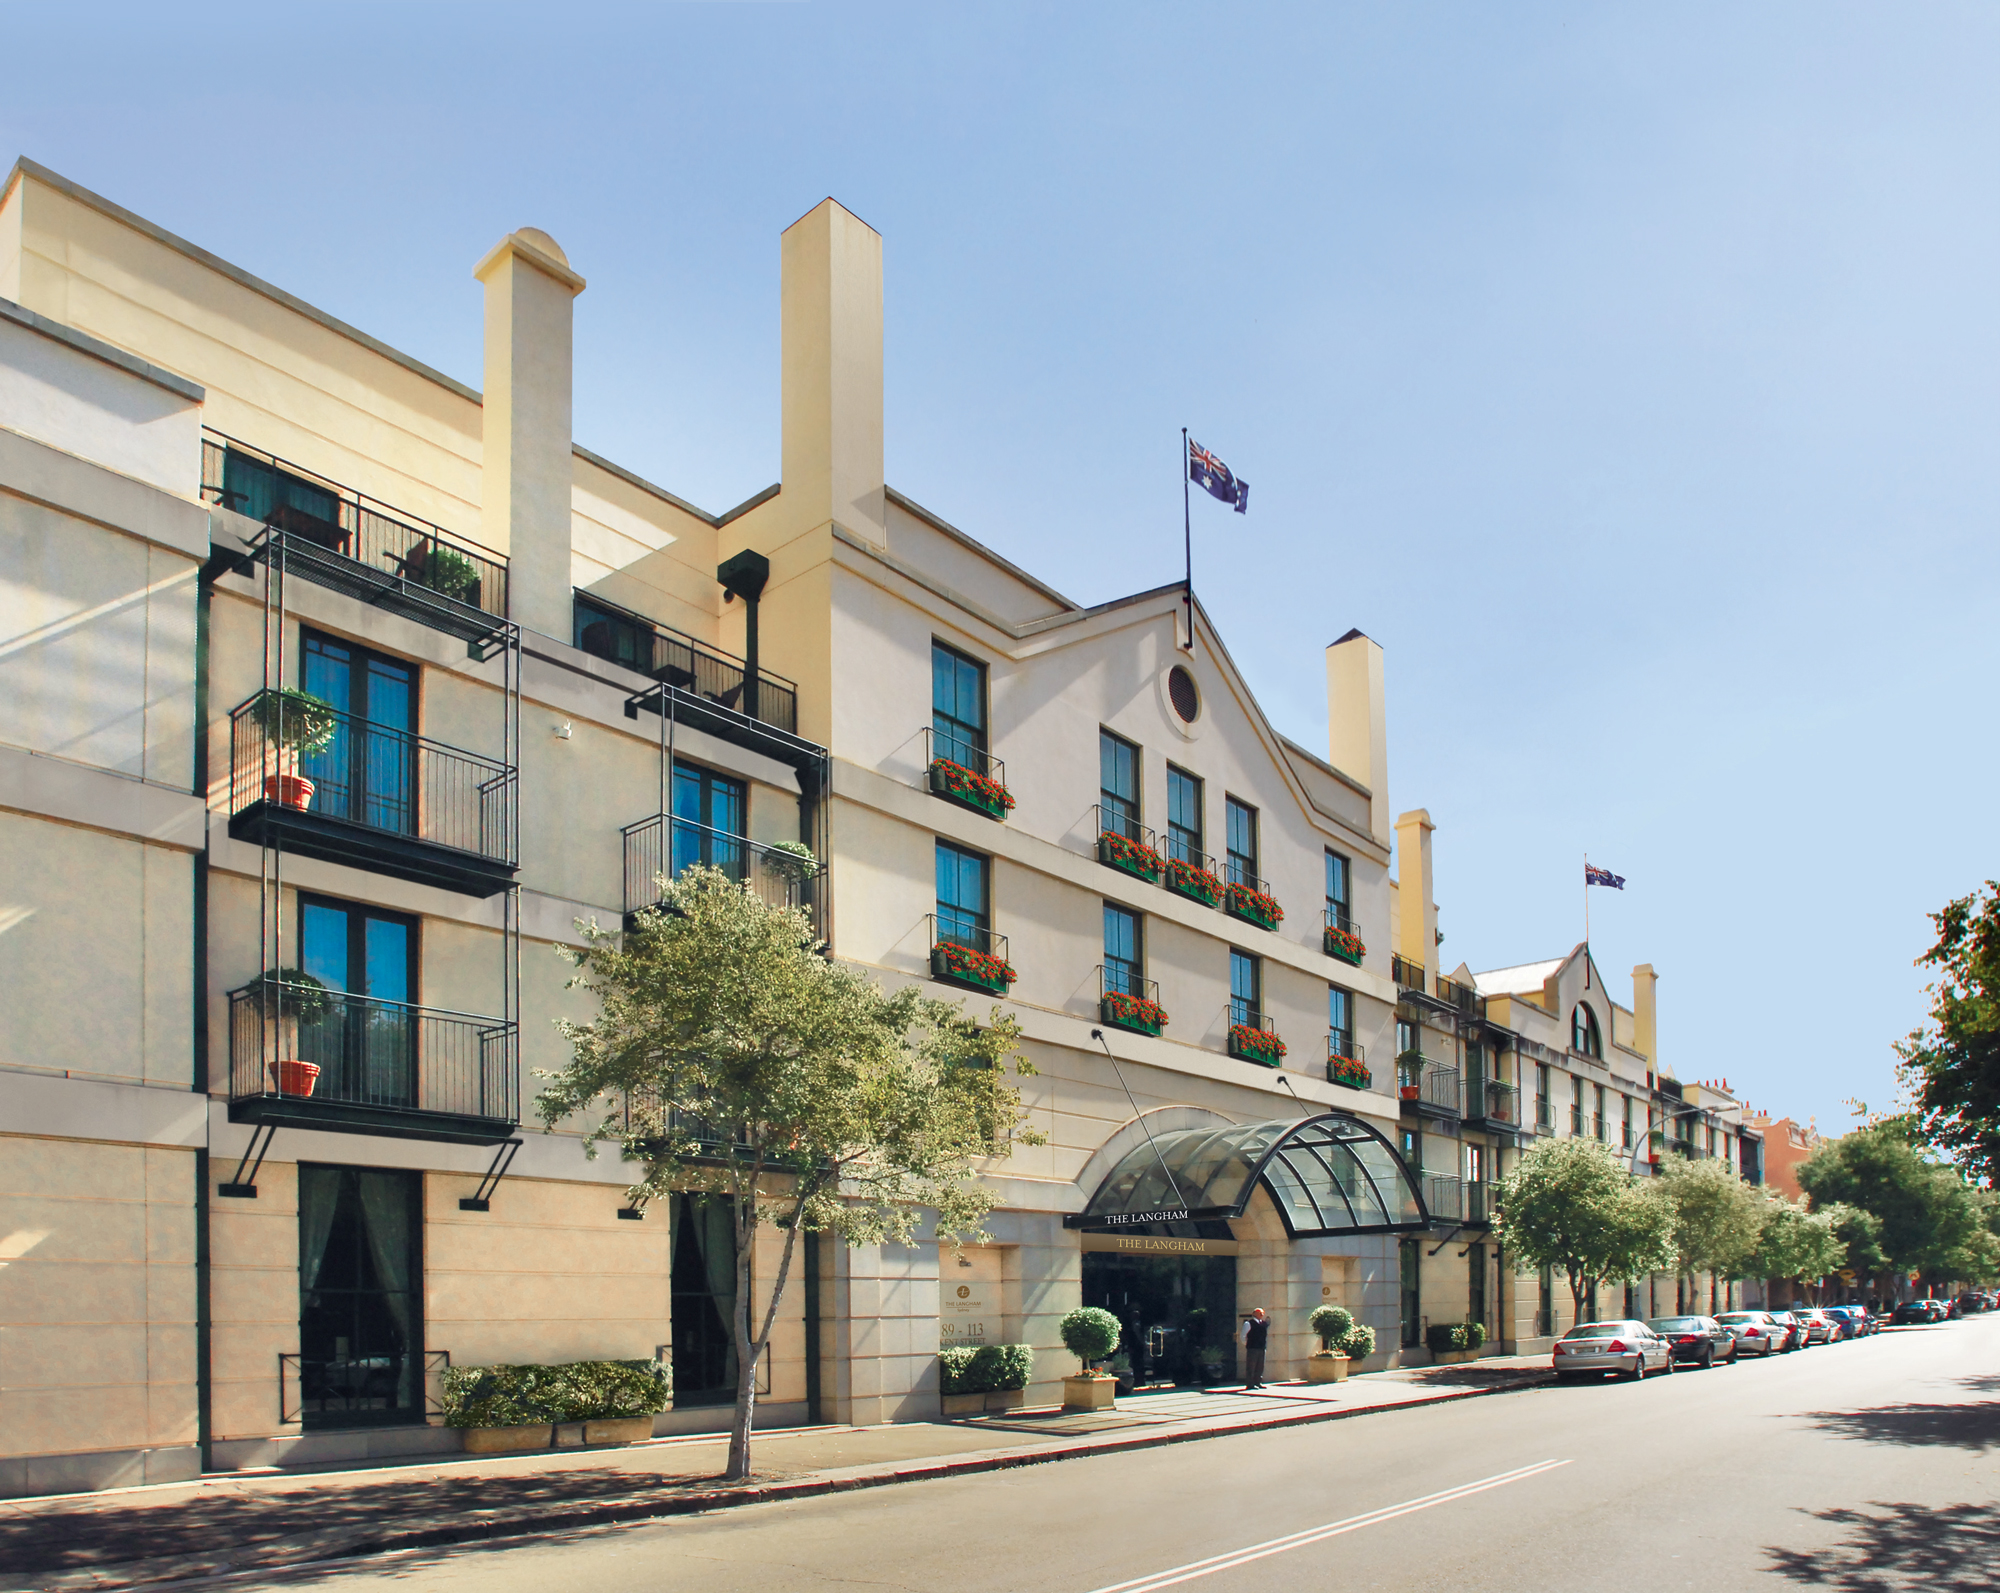 Best luxury hotels in australia top 10 ealuxe com for Luxury hotels all over the world